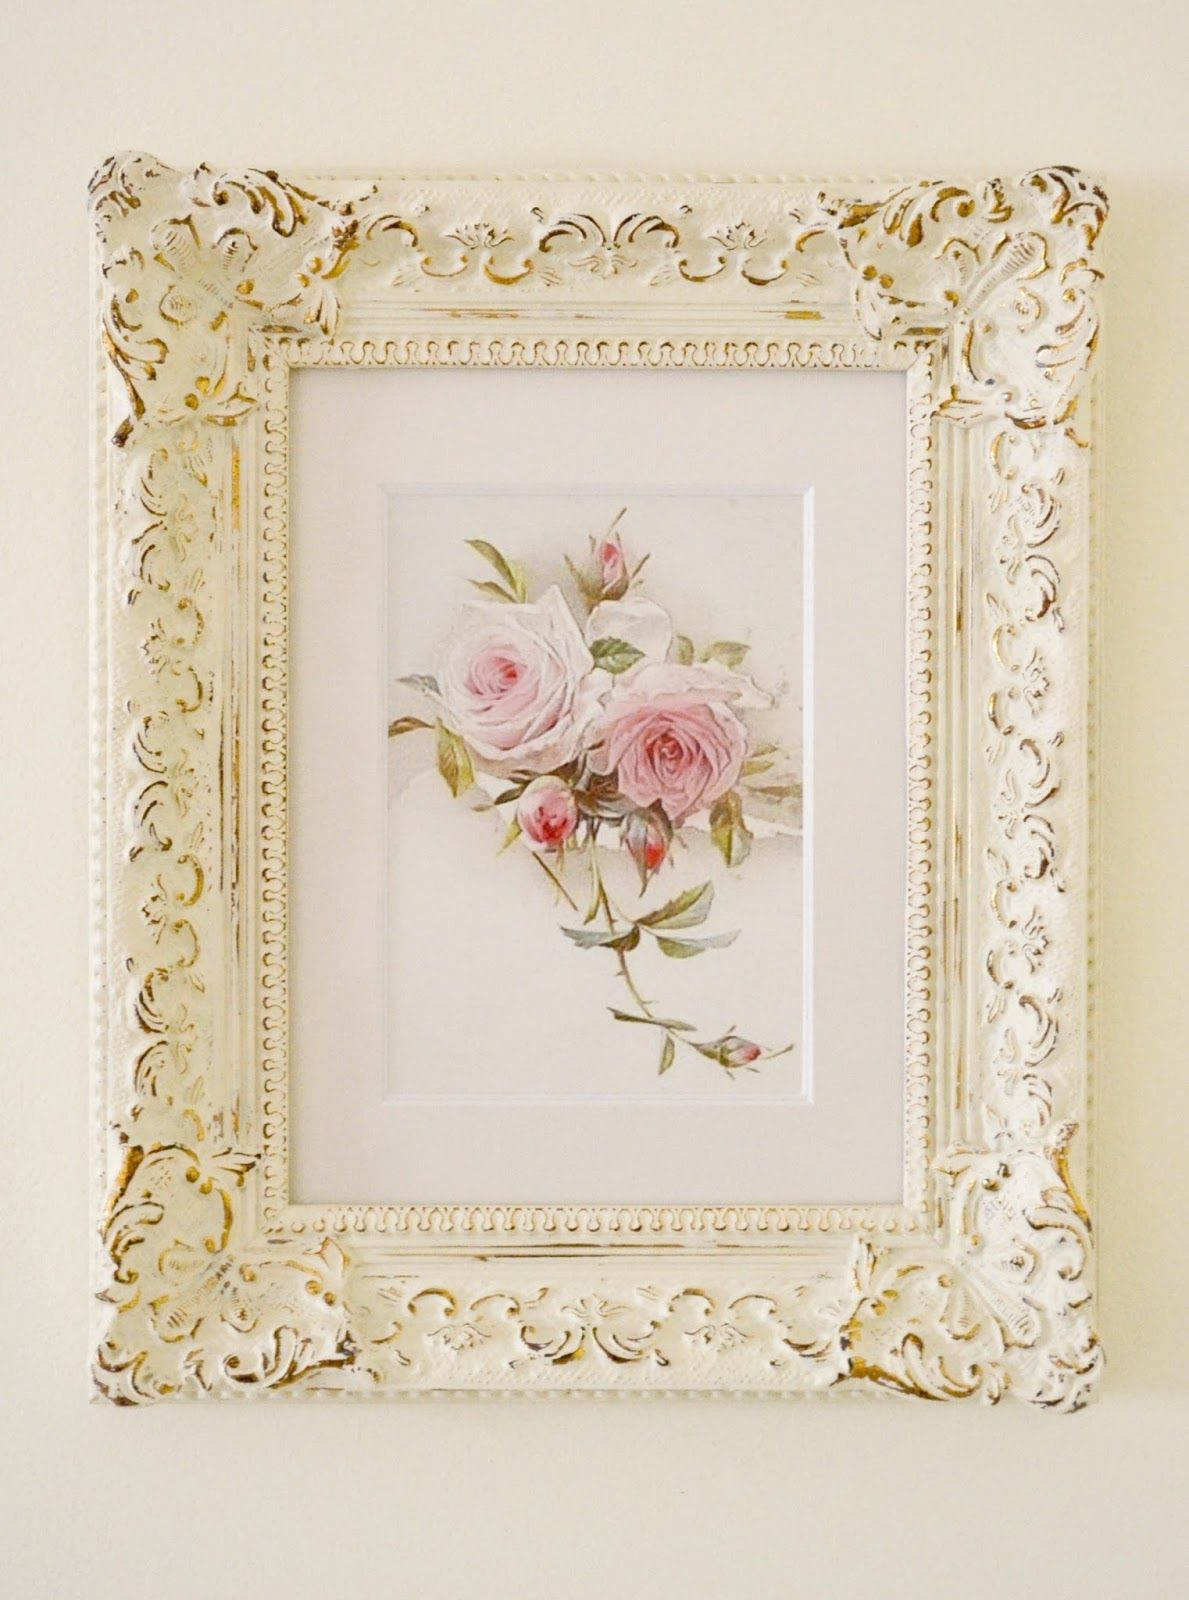 Jennelise | Shabby Chic | Pinterest | Marcos, Cuadro y Cuadros vintage